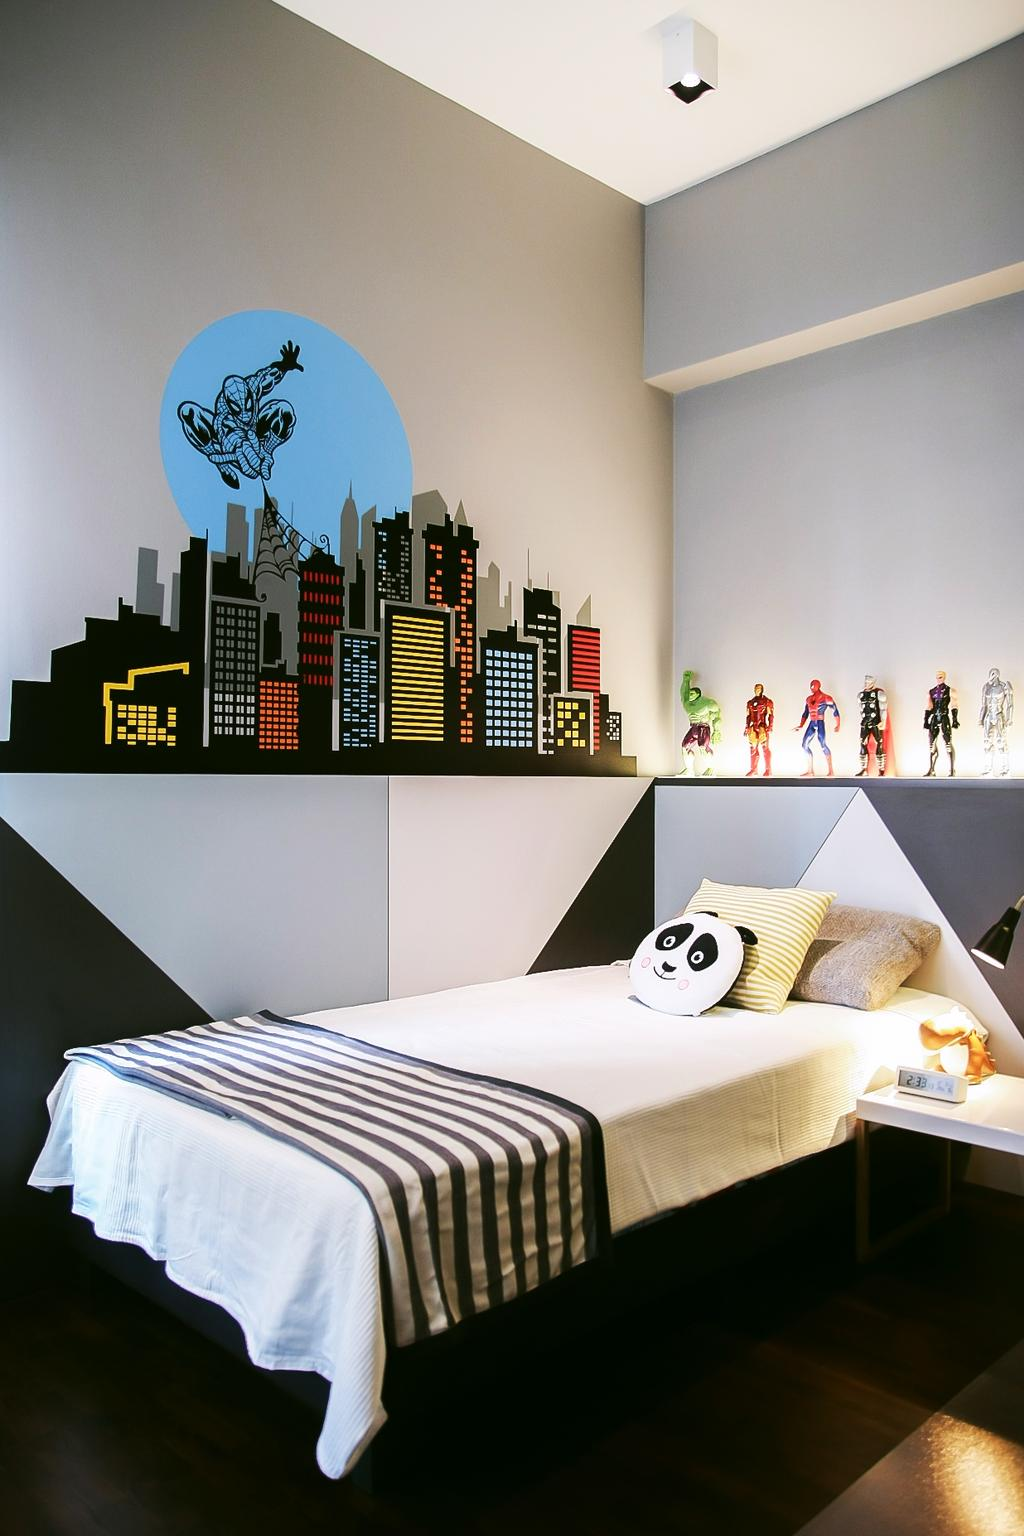 Modern, Condo, Bedroom, Tiara, Architect, JOW Architects, Wall Decal, Wall Sticker, Kids Room, Kids, Childrens, Soft Toys, Display Ledge, Wall Ledge, Bedside Table, Wall Mural, Monochrome, Toys Display, White Board, Indoors, Interior Design, Room, Bed, Furniture